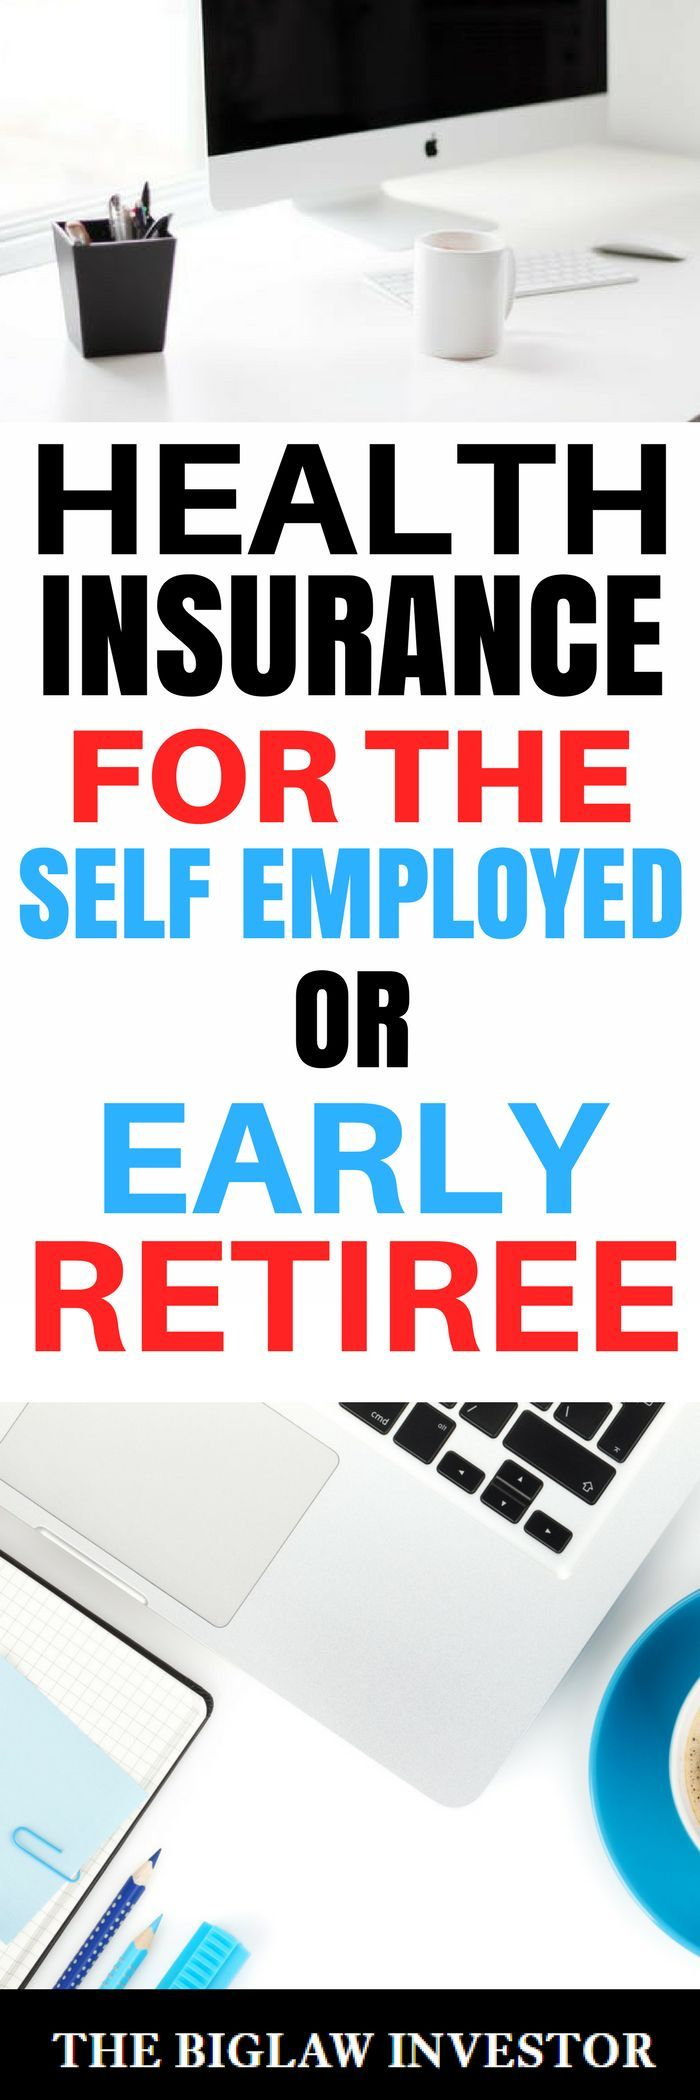 Health Insurance for the Self-Employed or Early Retiree ...